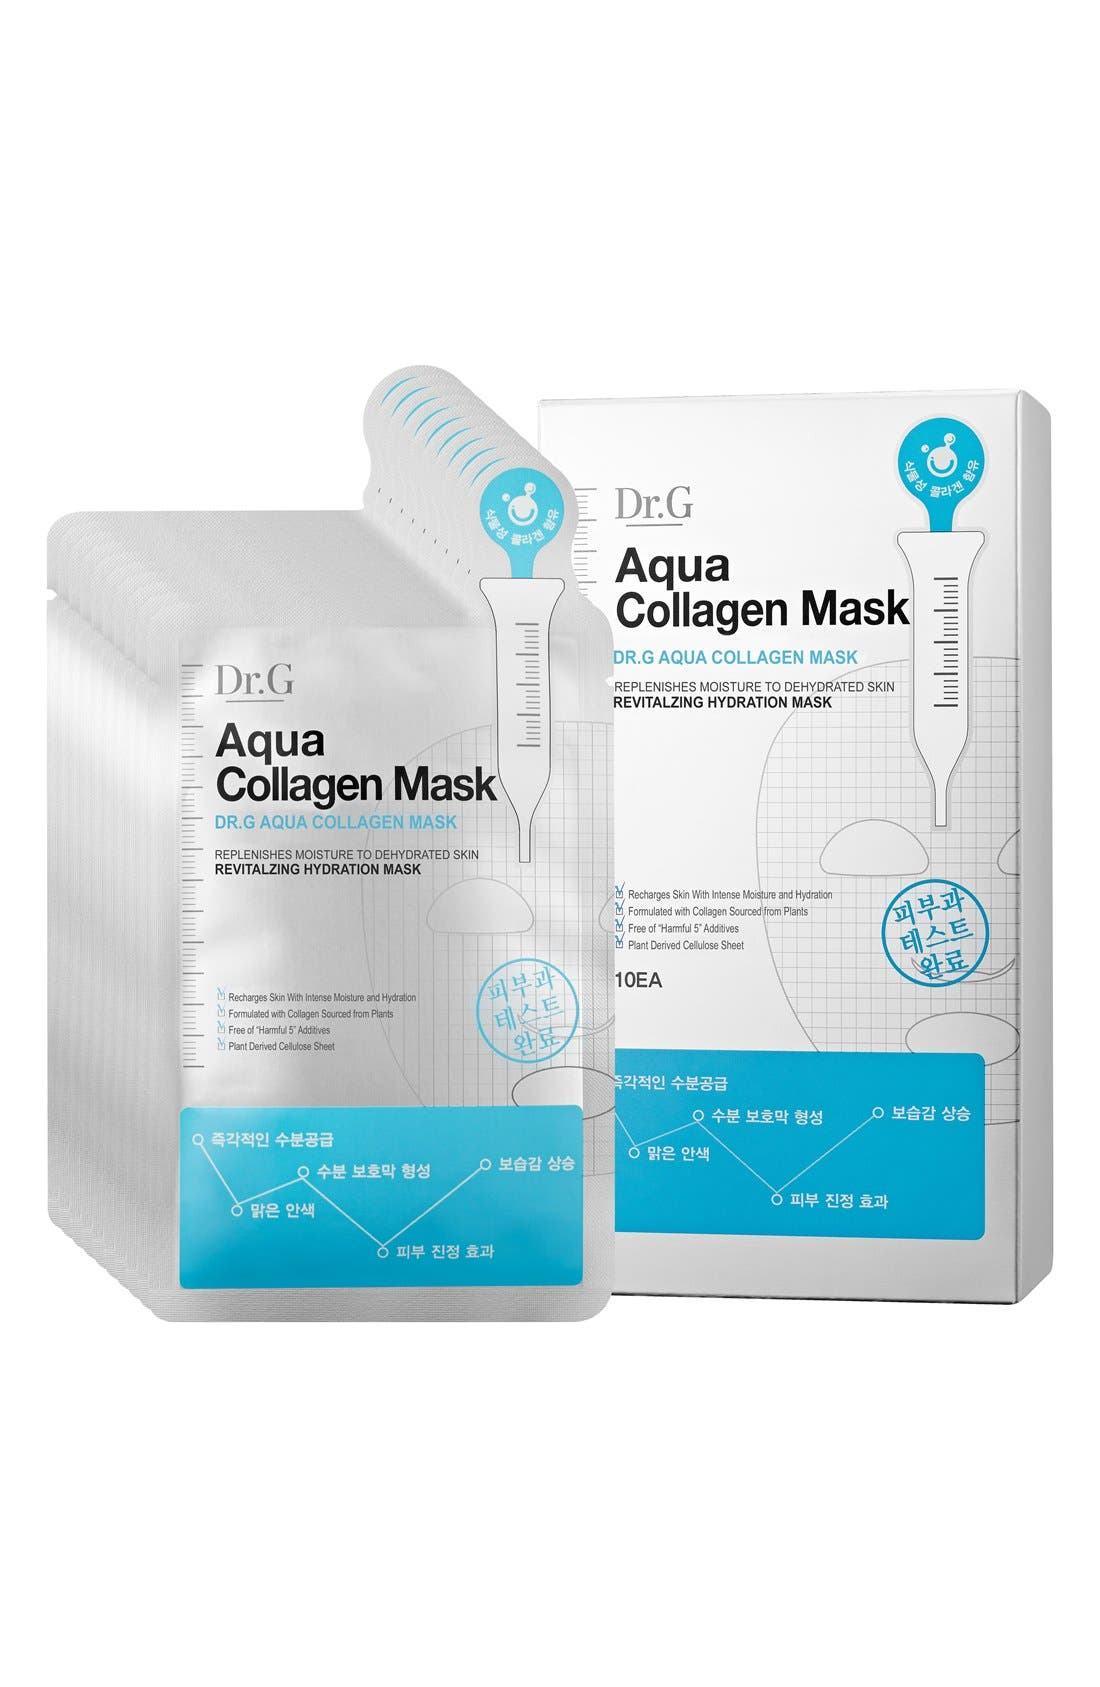 My Skin Mentor Dr. G Beauty Aqua Collagen Mask